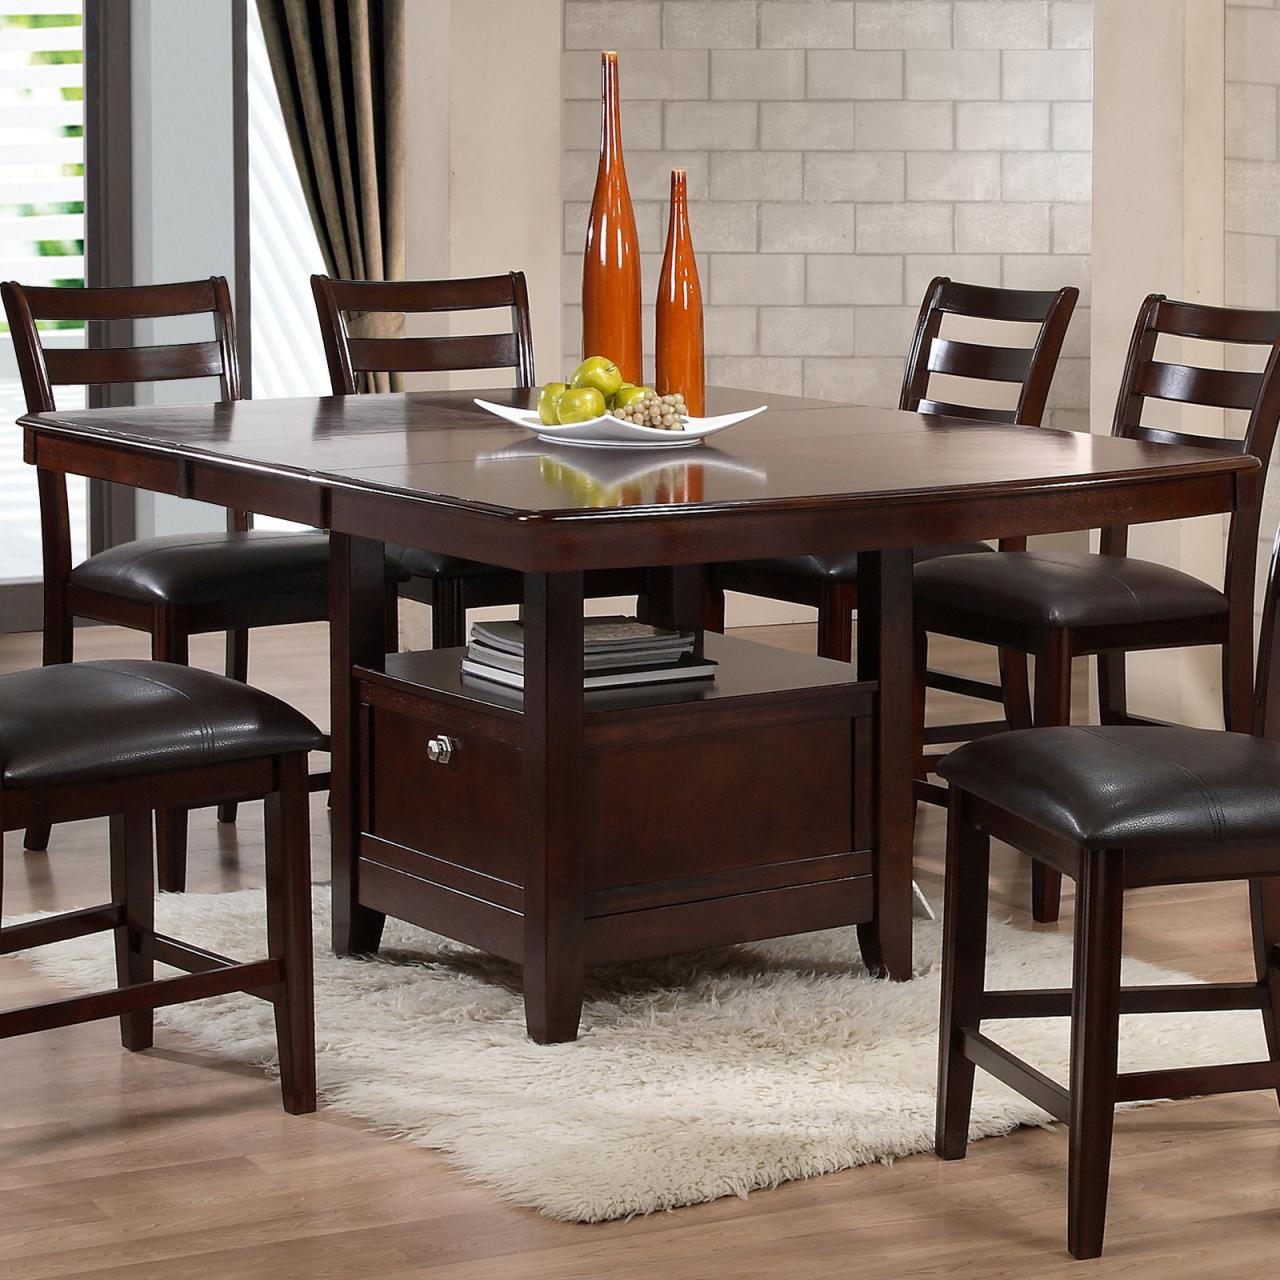 Holland House 1965 Dining Contemporary Pub Table with